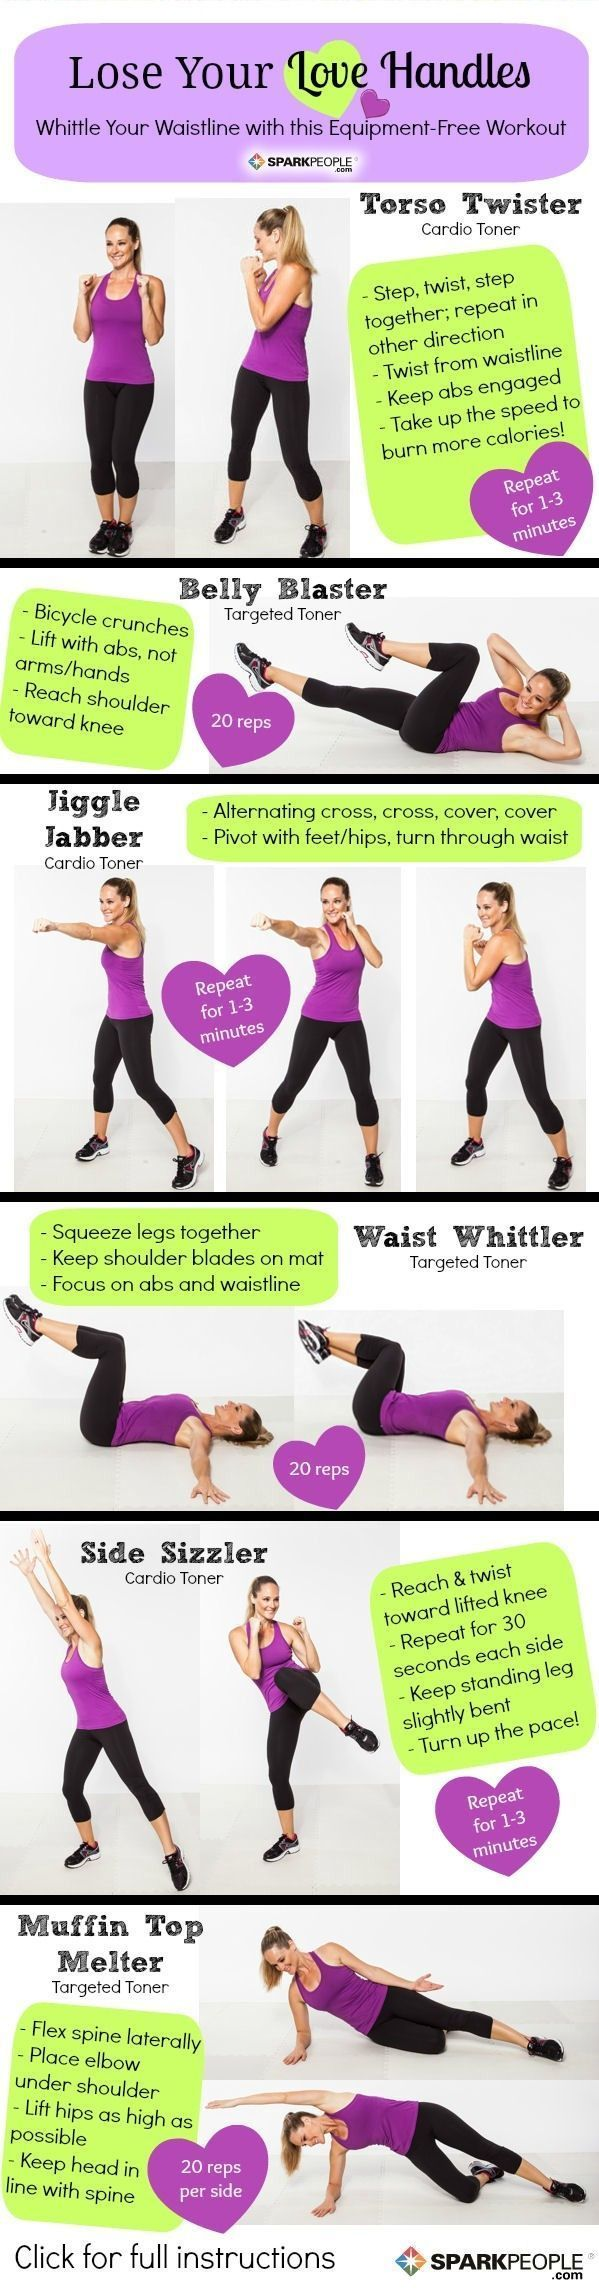 These are all GREAT exercises! My roomie and I were doing them a lot last year. I highly recommend them!